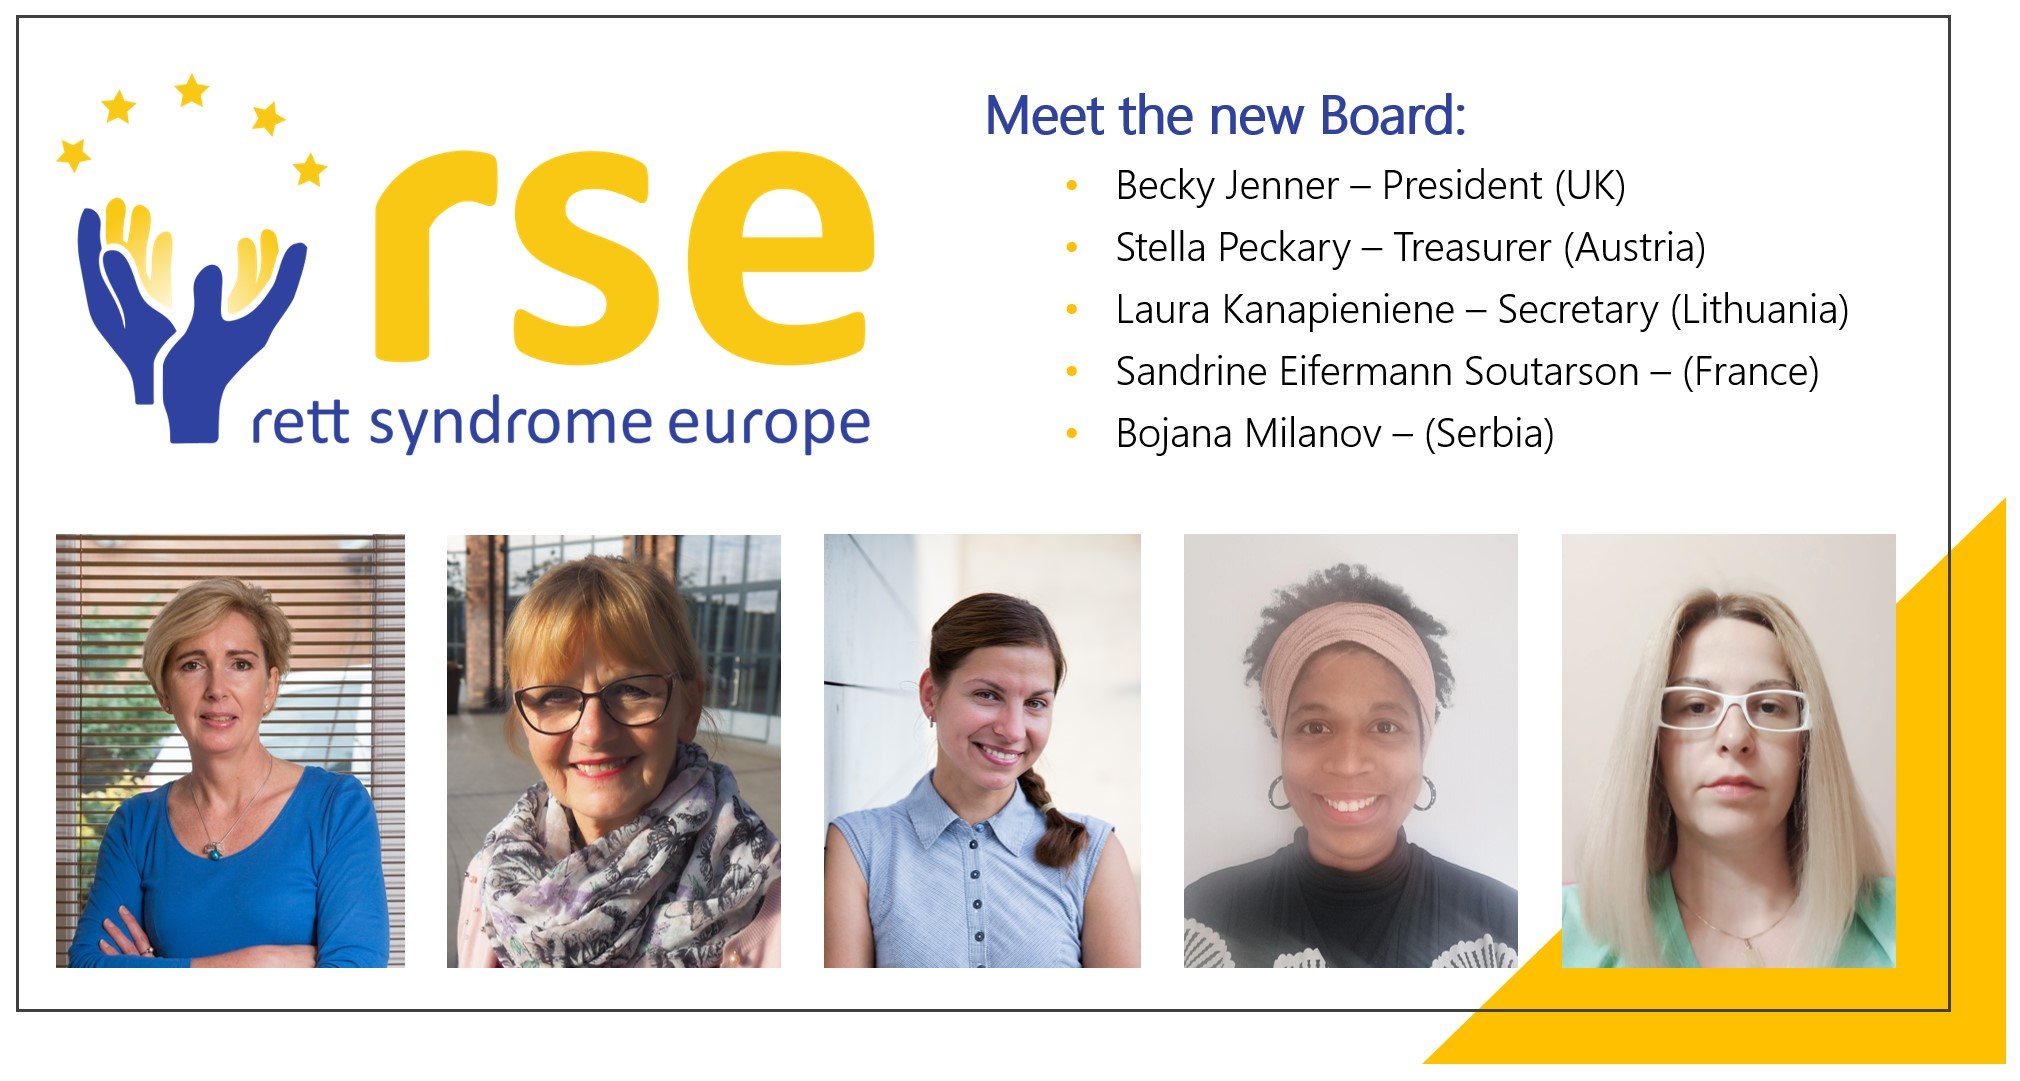 RSE executive board changes